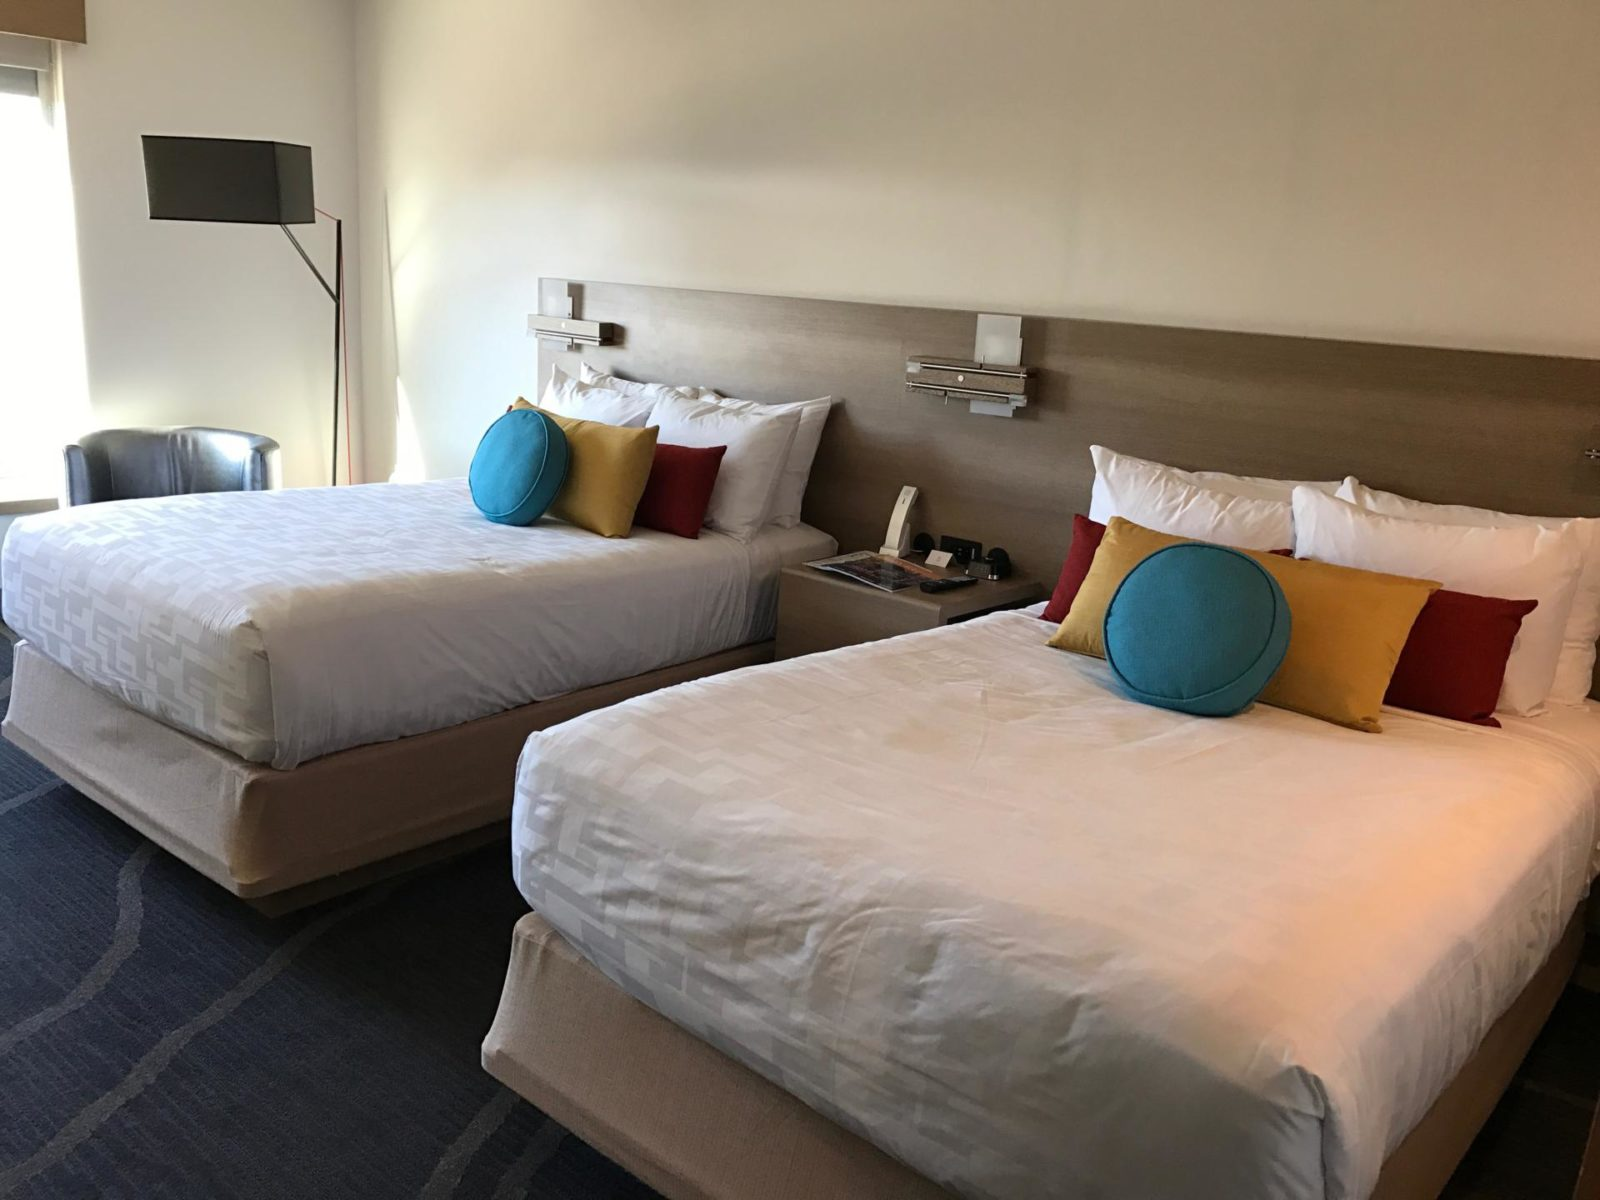 Thinking about planning a trip to Denver? Plan a stay at the ART Hotel!